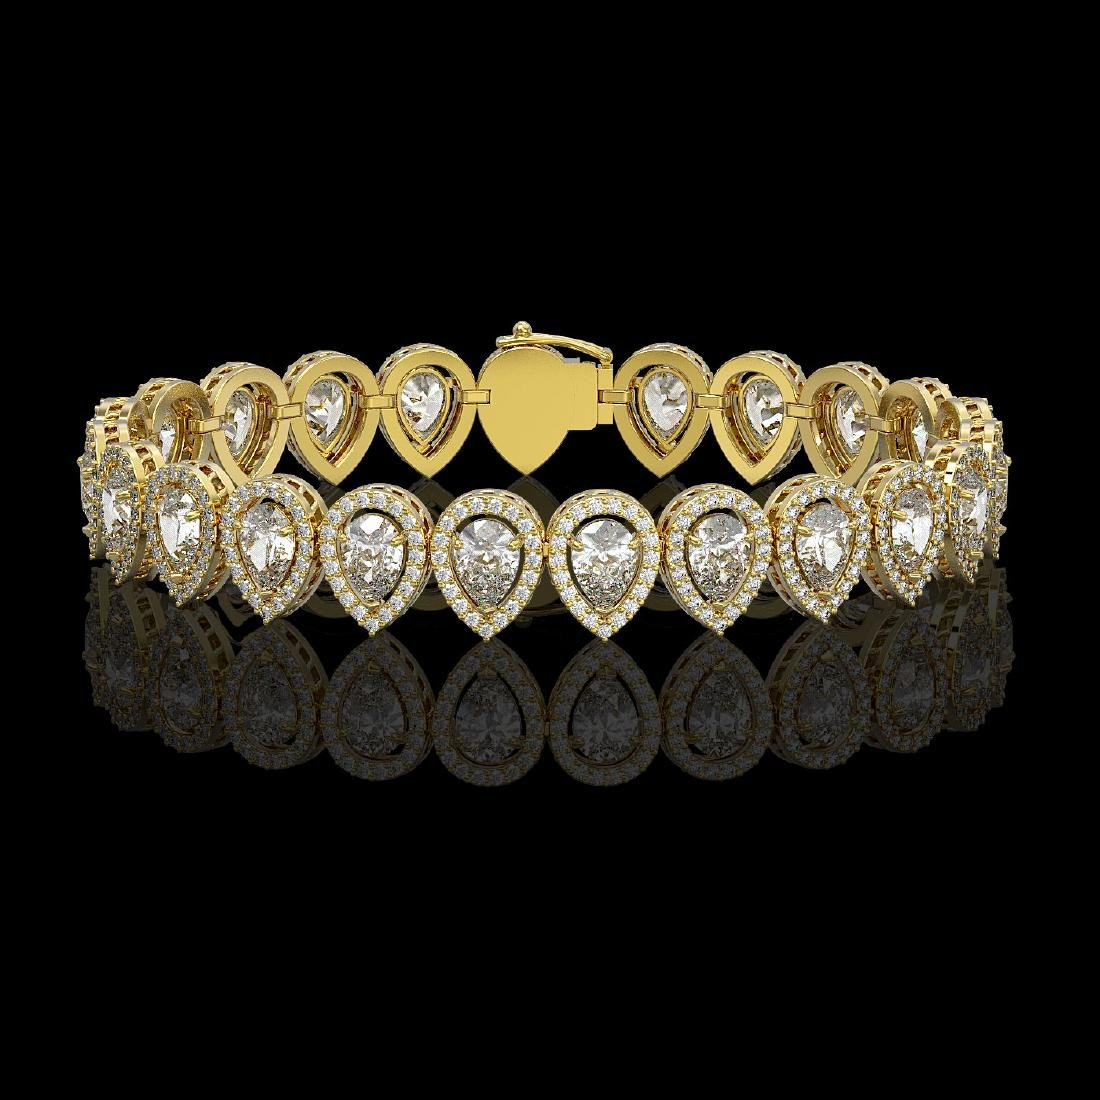 15.85 CTW Pear Diamond Designer Bracelet 18K Yellow